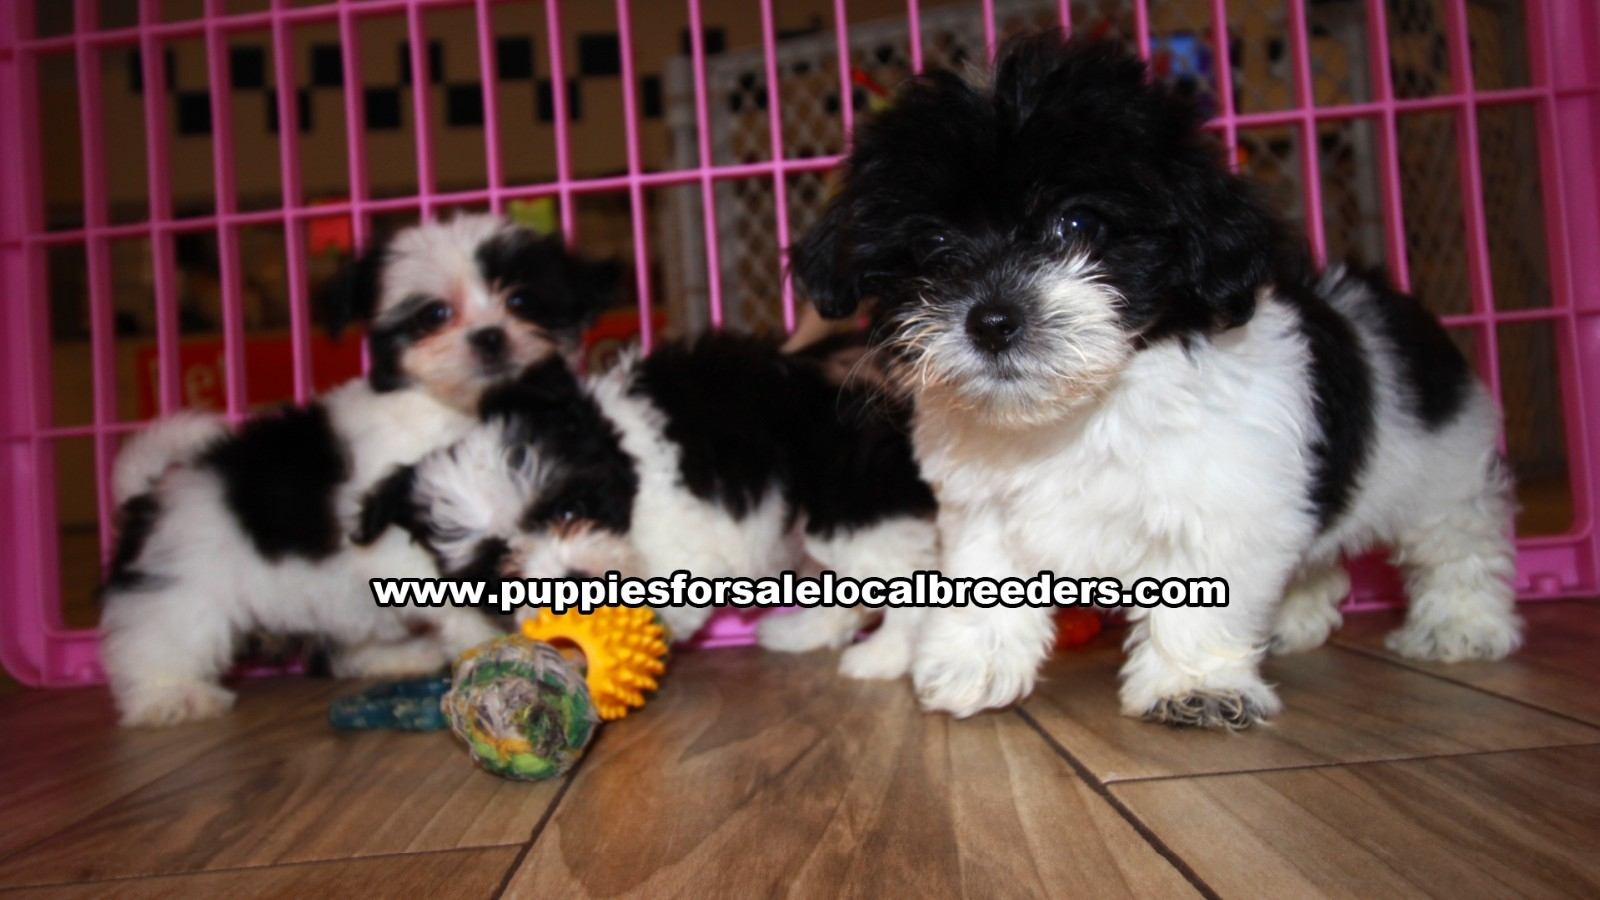 Morkie, Puppies For Sale In Georgia, Local Breeders, Near Atlanta, Ga